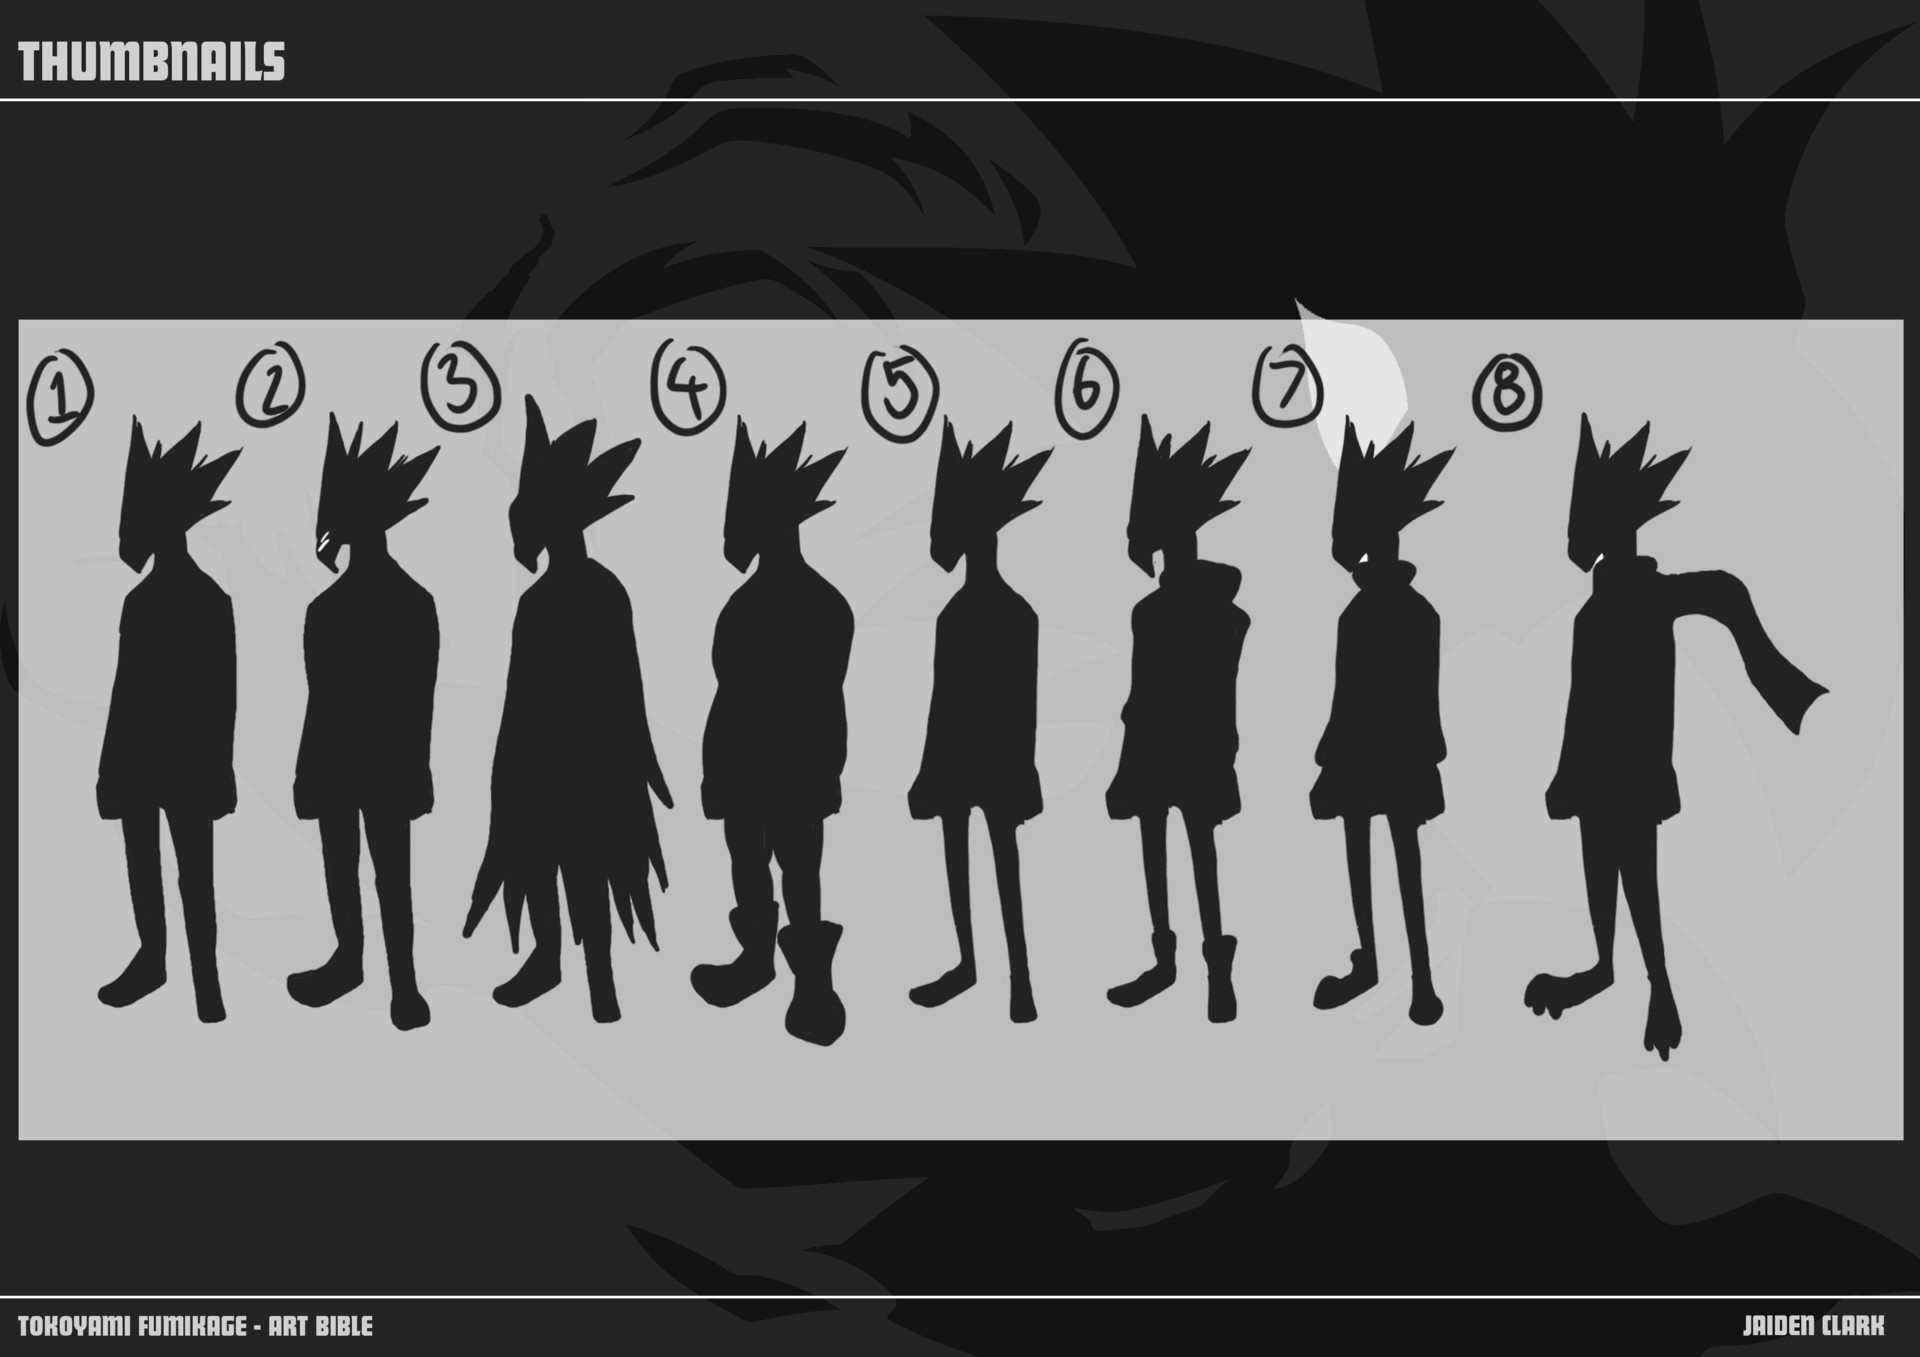 Concepting - Silhouette thumbnails